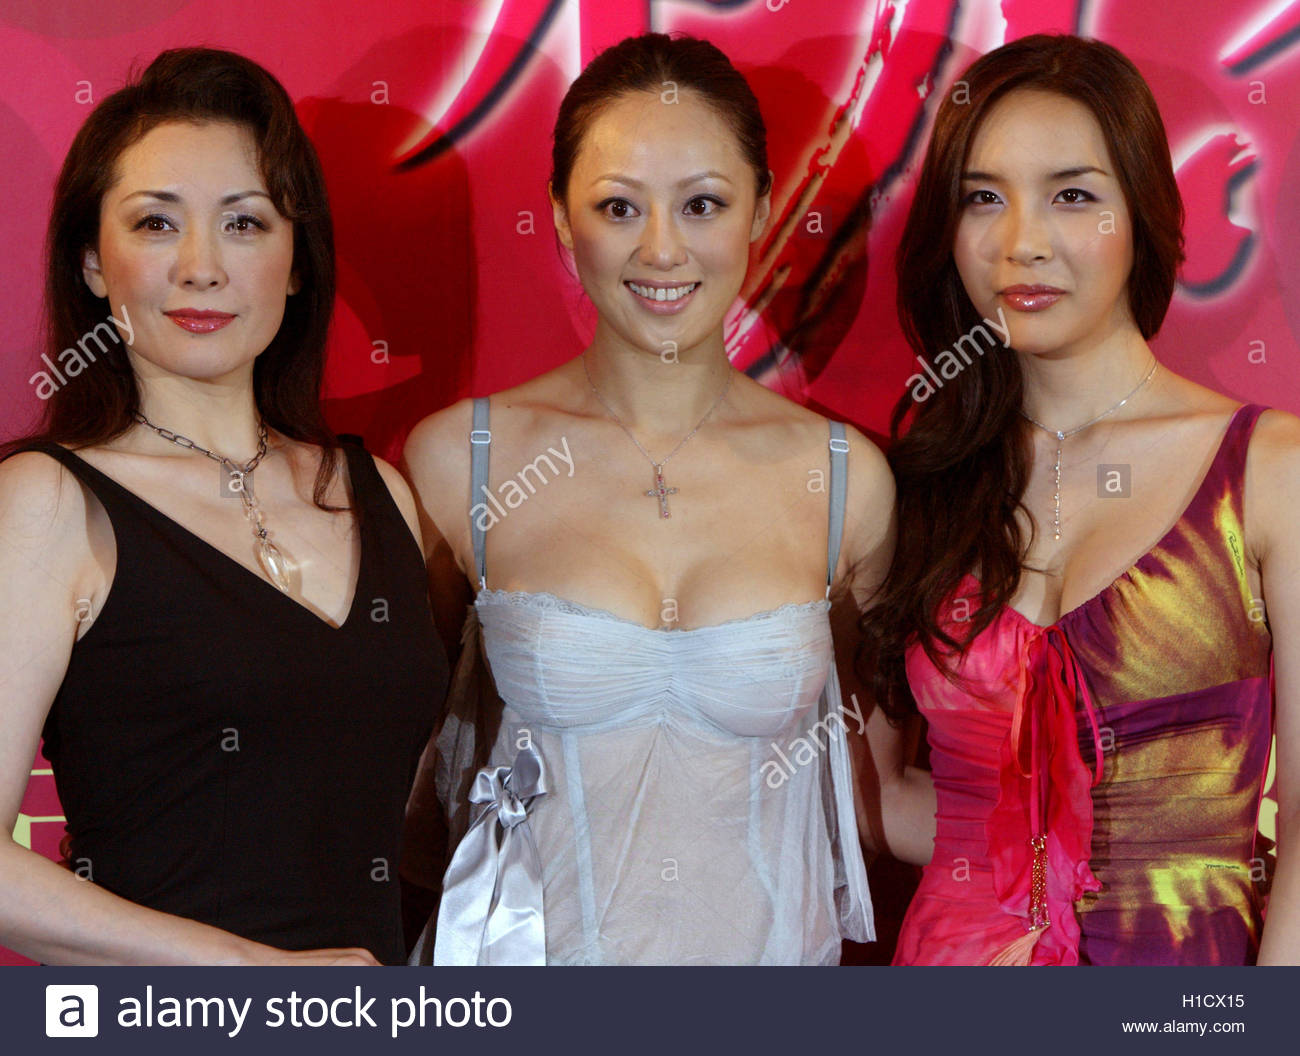 hong kong actress teresa cheung ese actress matsuzaka keiko reuters kin cheung ese actress matsuzaka keiko hong kong actress teresa cheung and south korea transexual singer